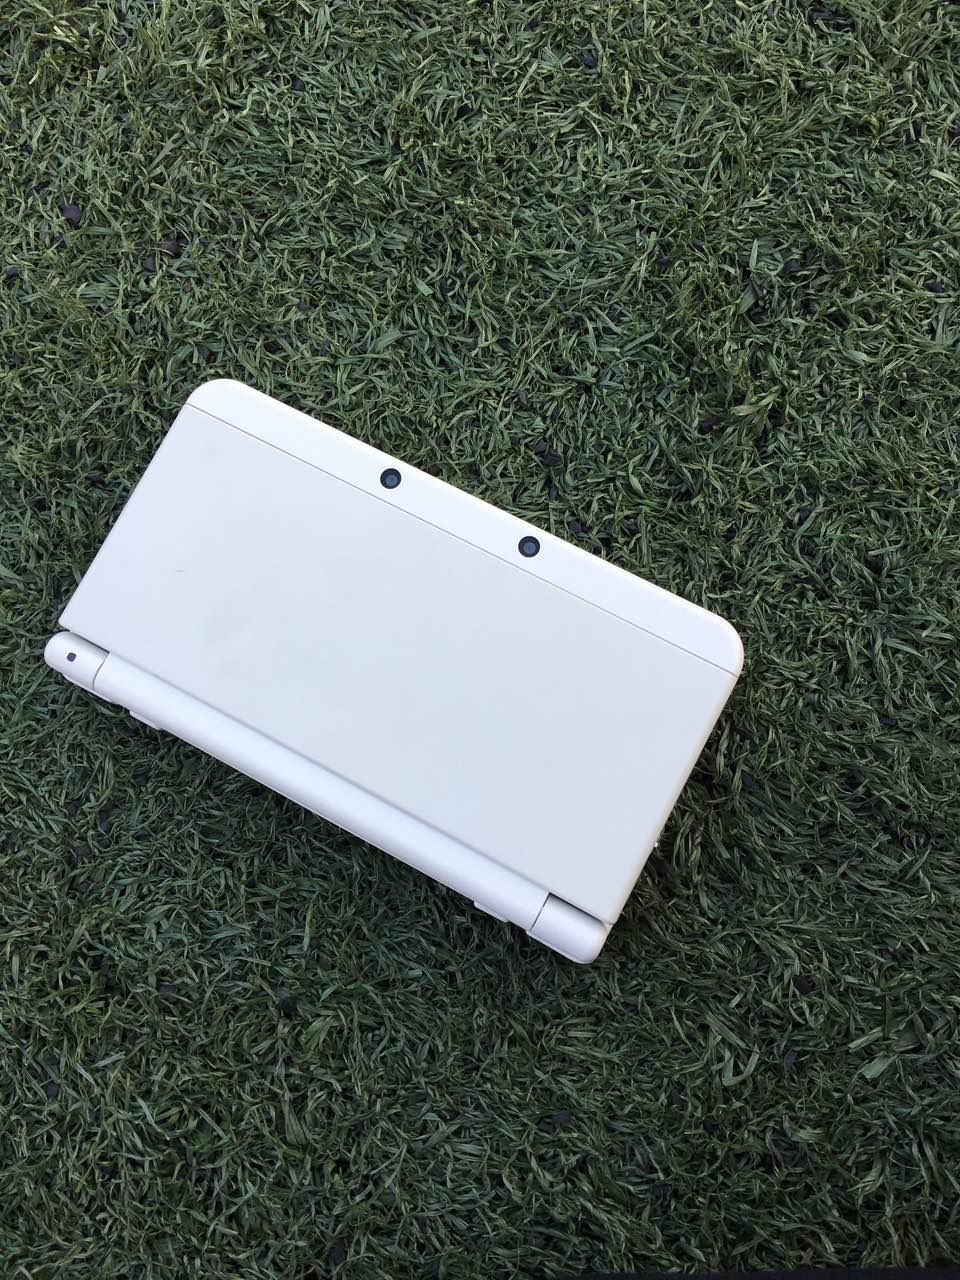 new 3dsll 游戏机 new 3ds 游戏机